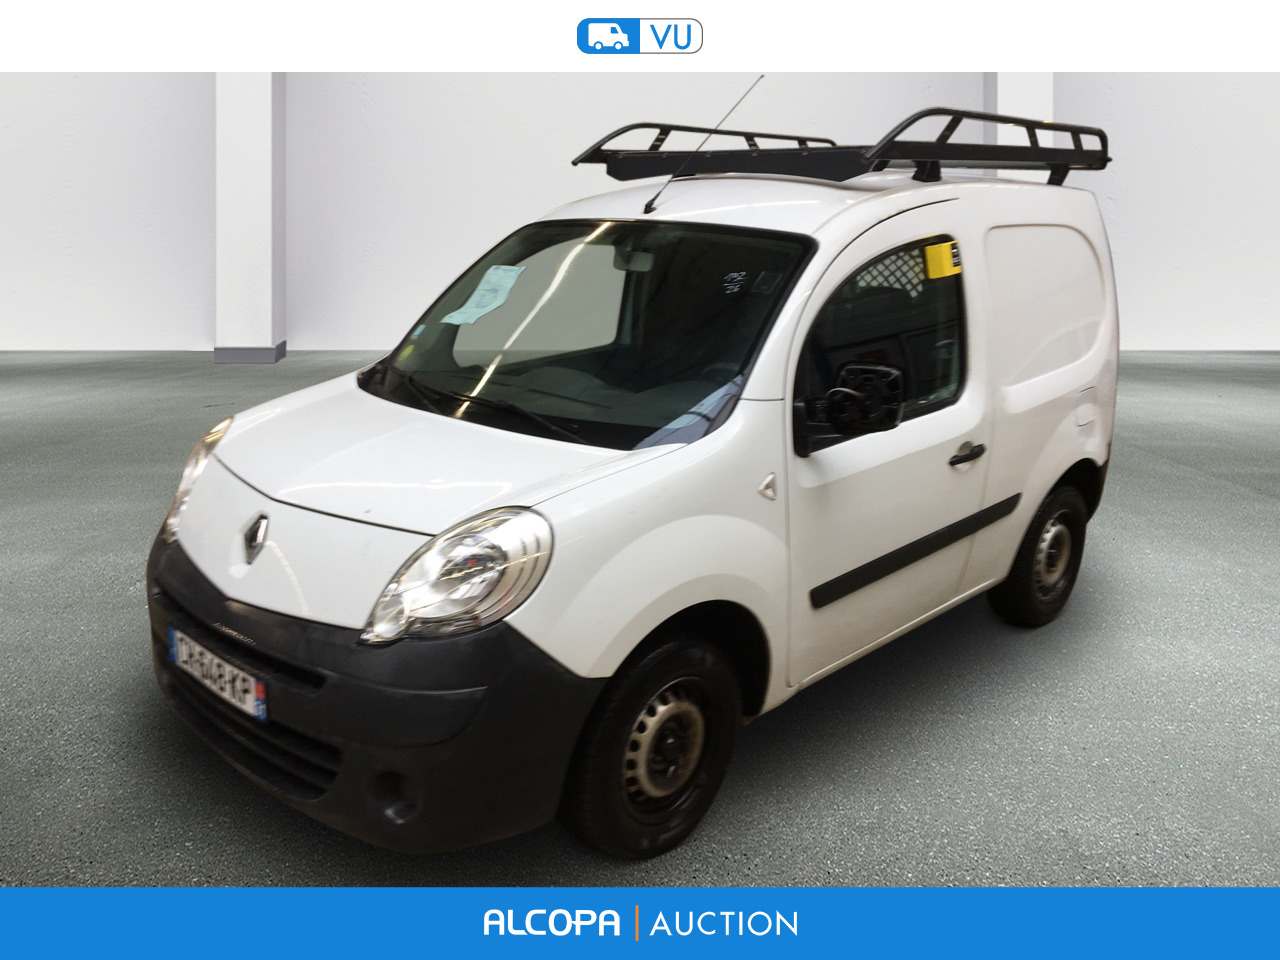 renault kangoo express 01 2013 kangoo express compact 1 5 dci 75 generique alcopa auction. Black Bedroom Furniture Sets. Home Design Ideas